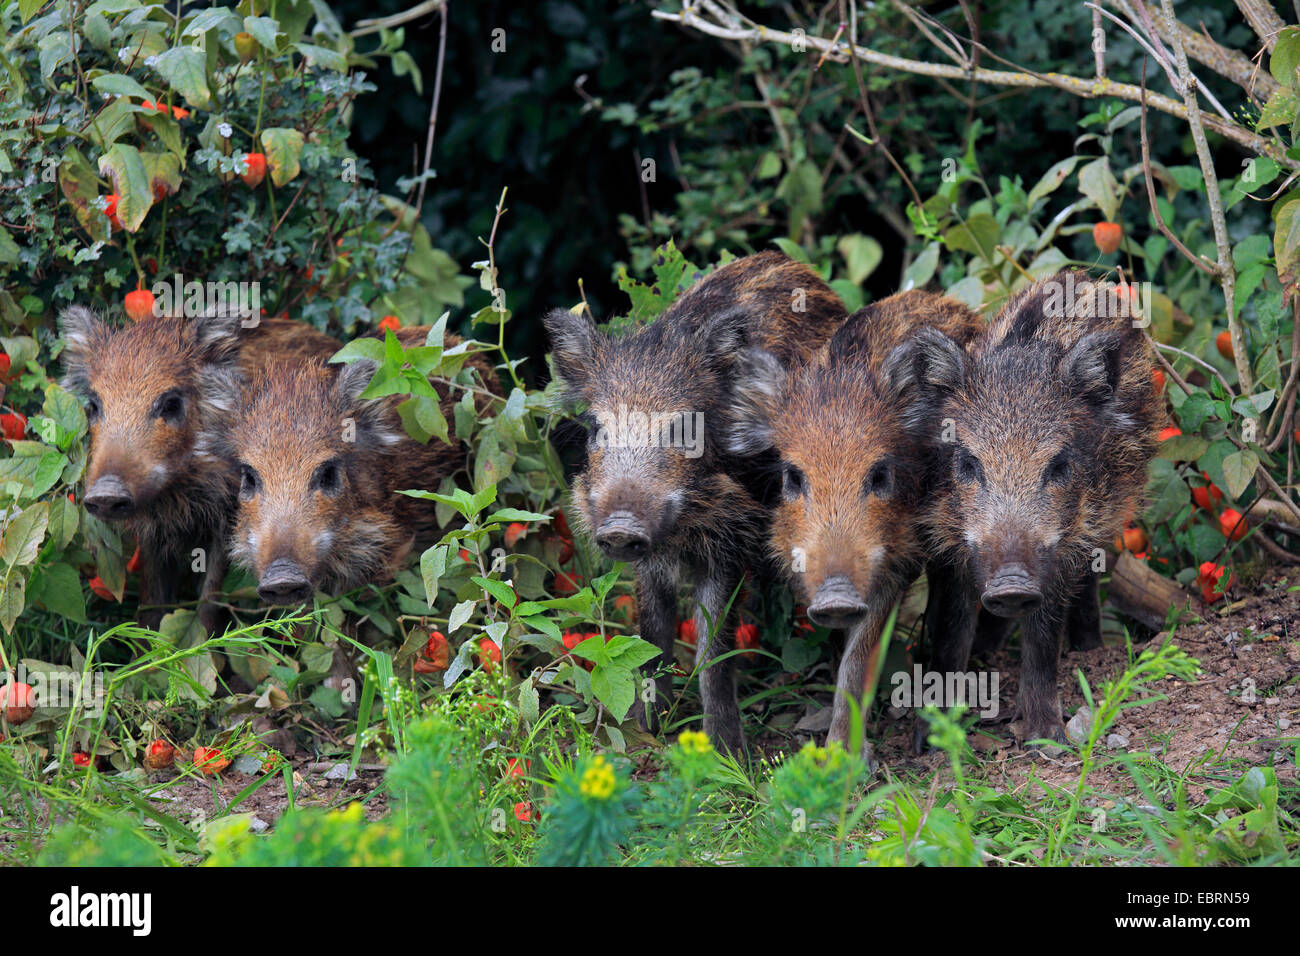 wild boar, pig, wild boar (Sus scrofa), five shotes standing together in the garden, Germany, Baden-Wuerttemberg - Stock Image